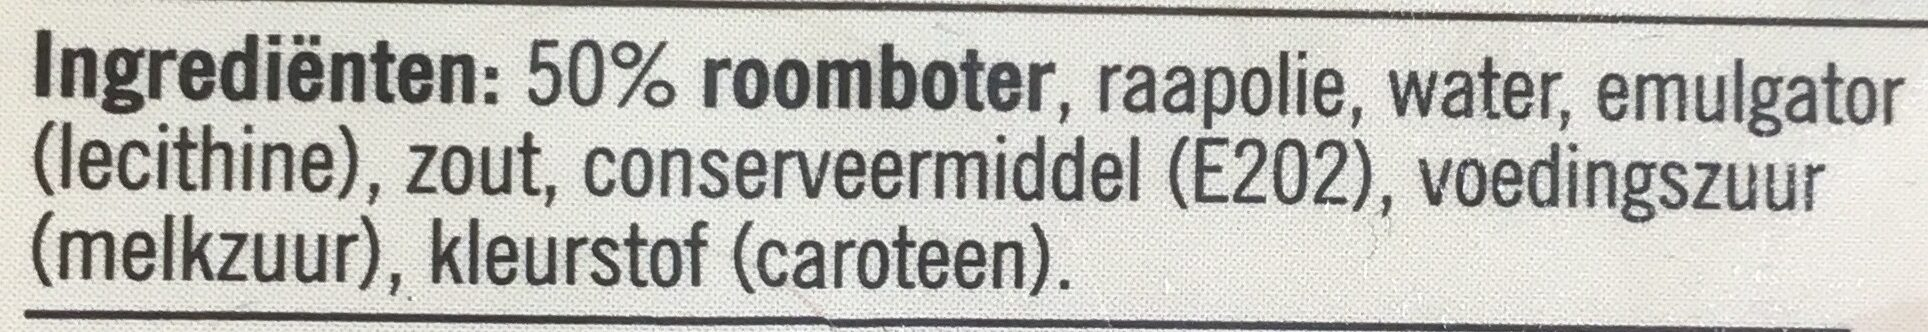 Roomboter - Ingredients - nl